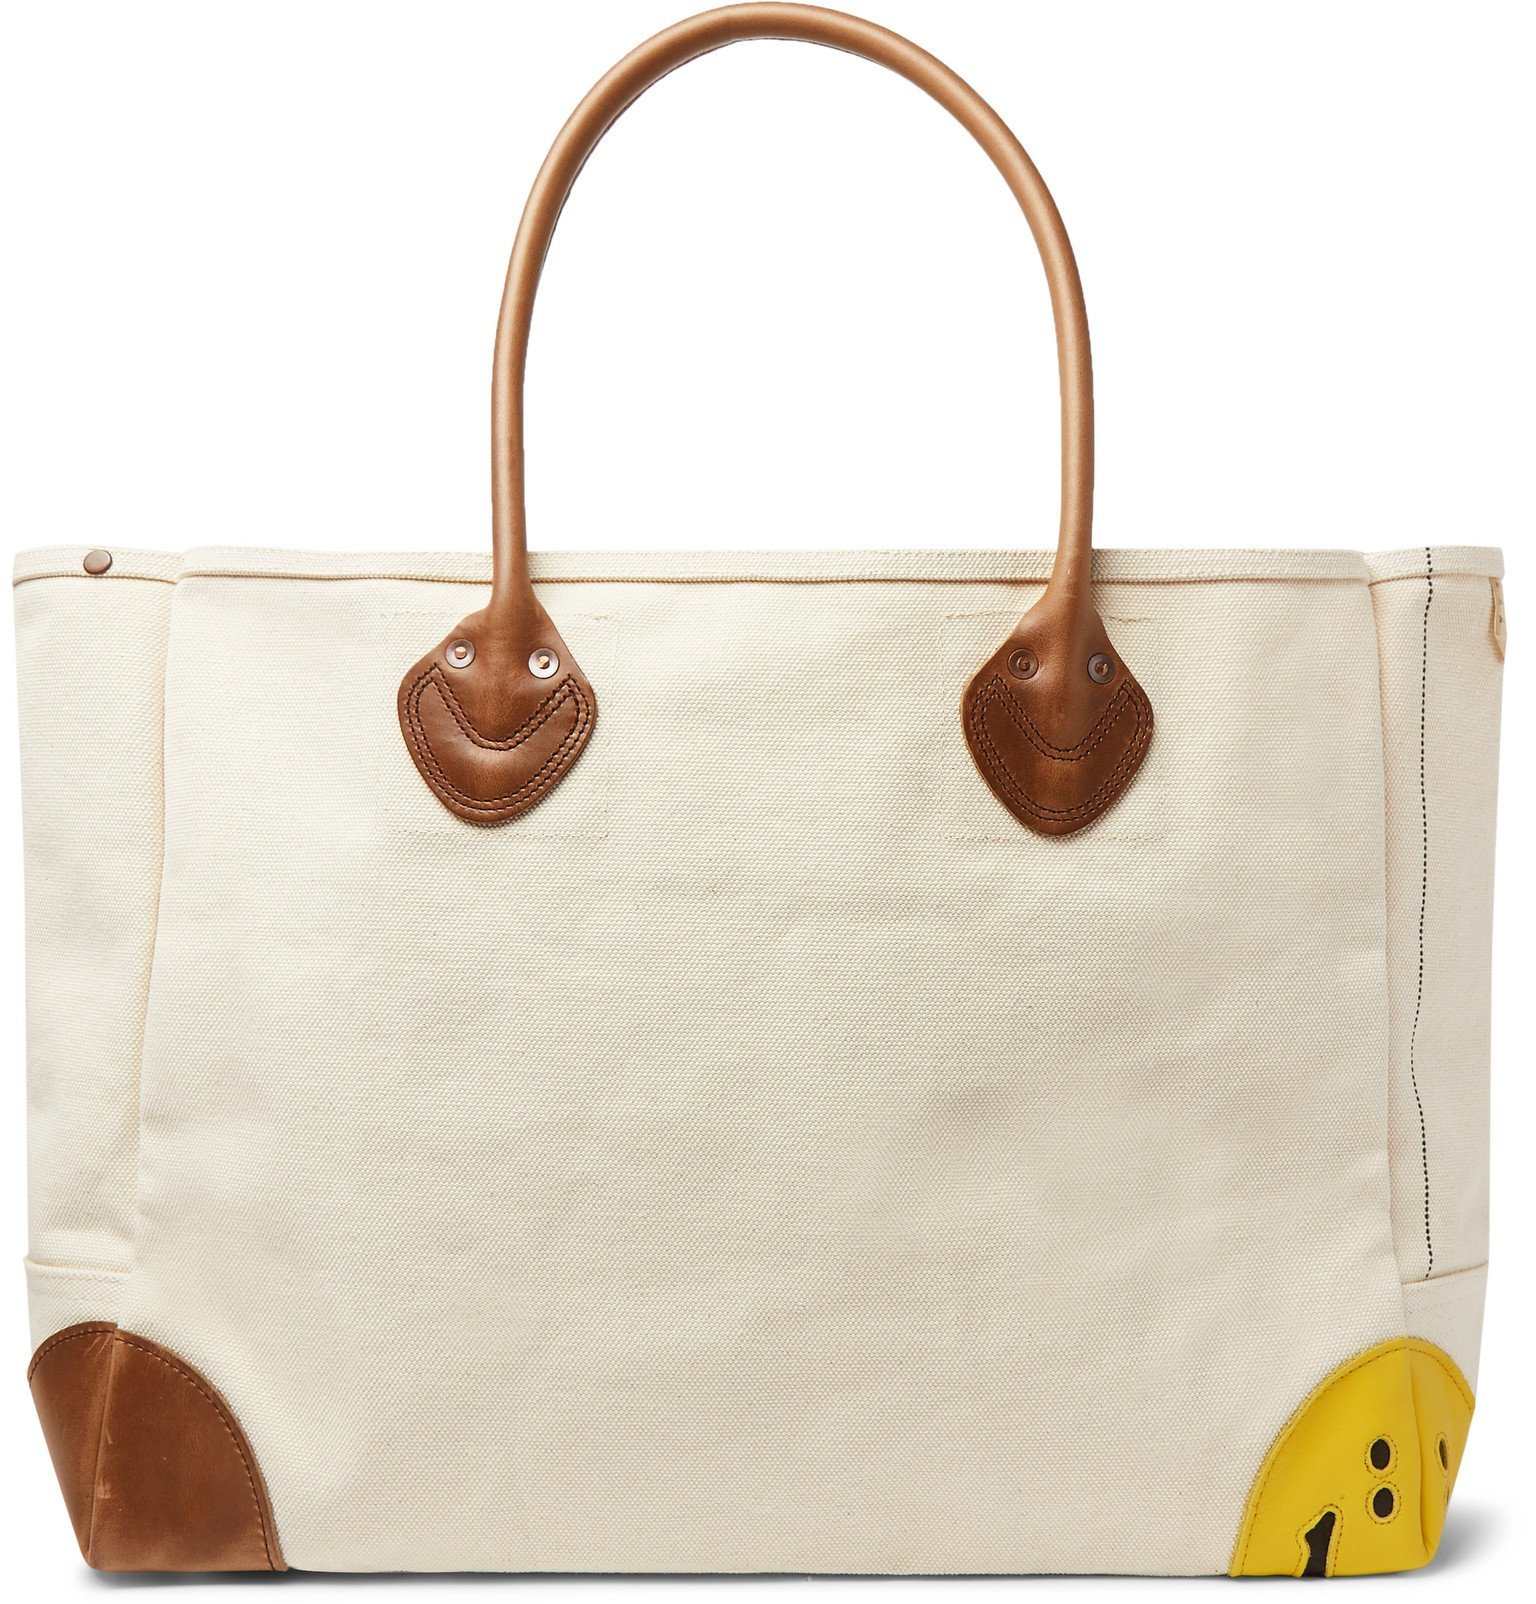 KAPITAL - Smiley Leather-Trimmed Canvas Tote Bag - Neutrals